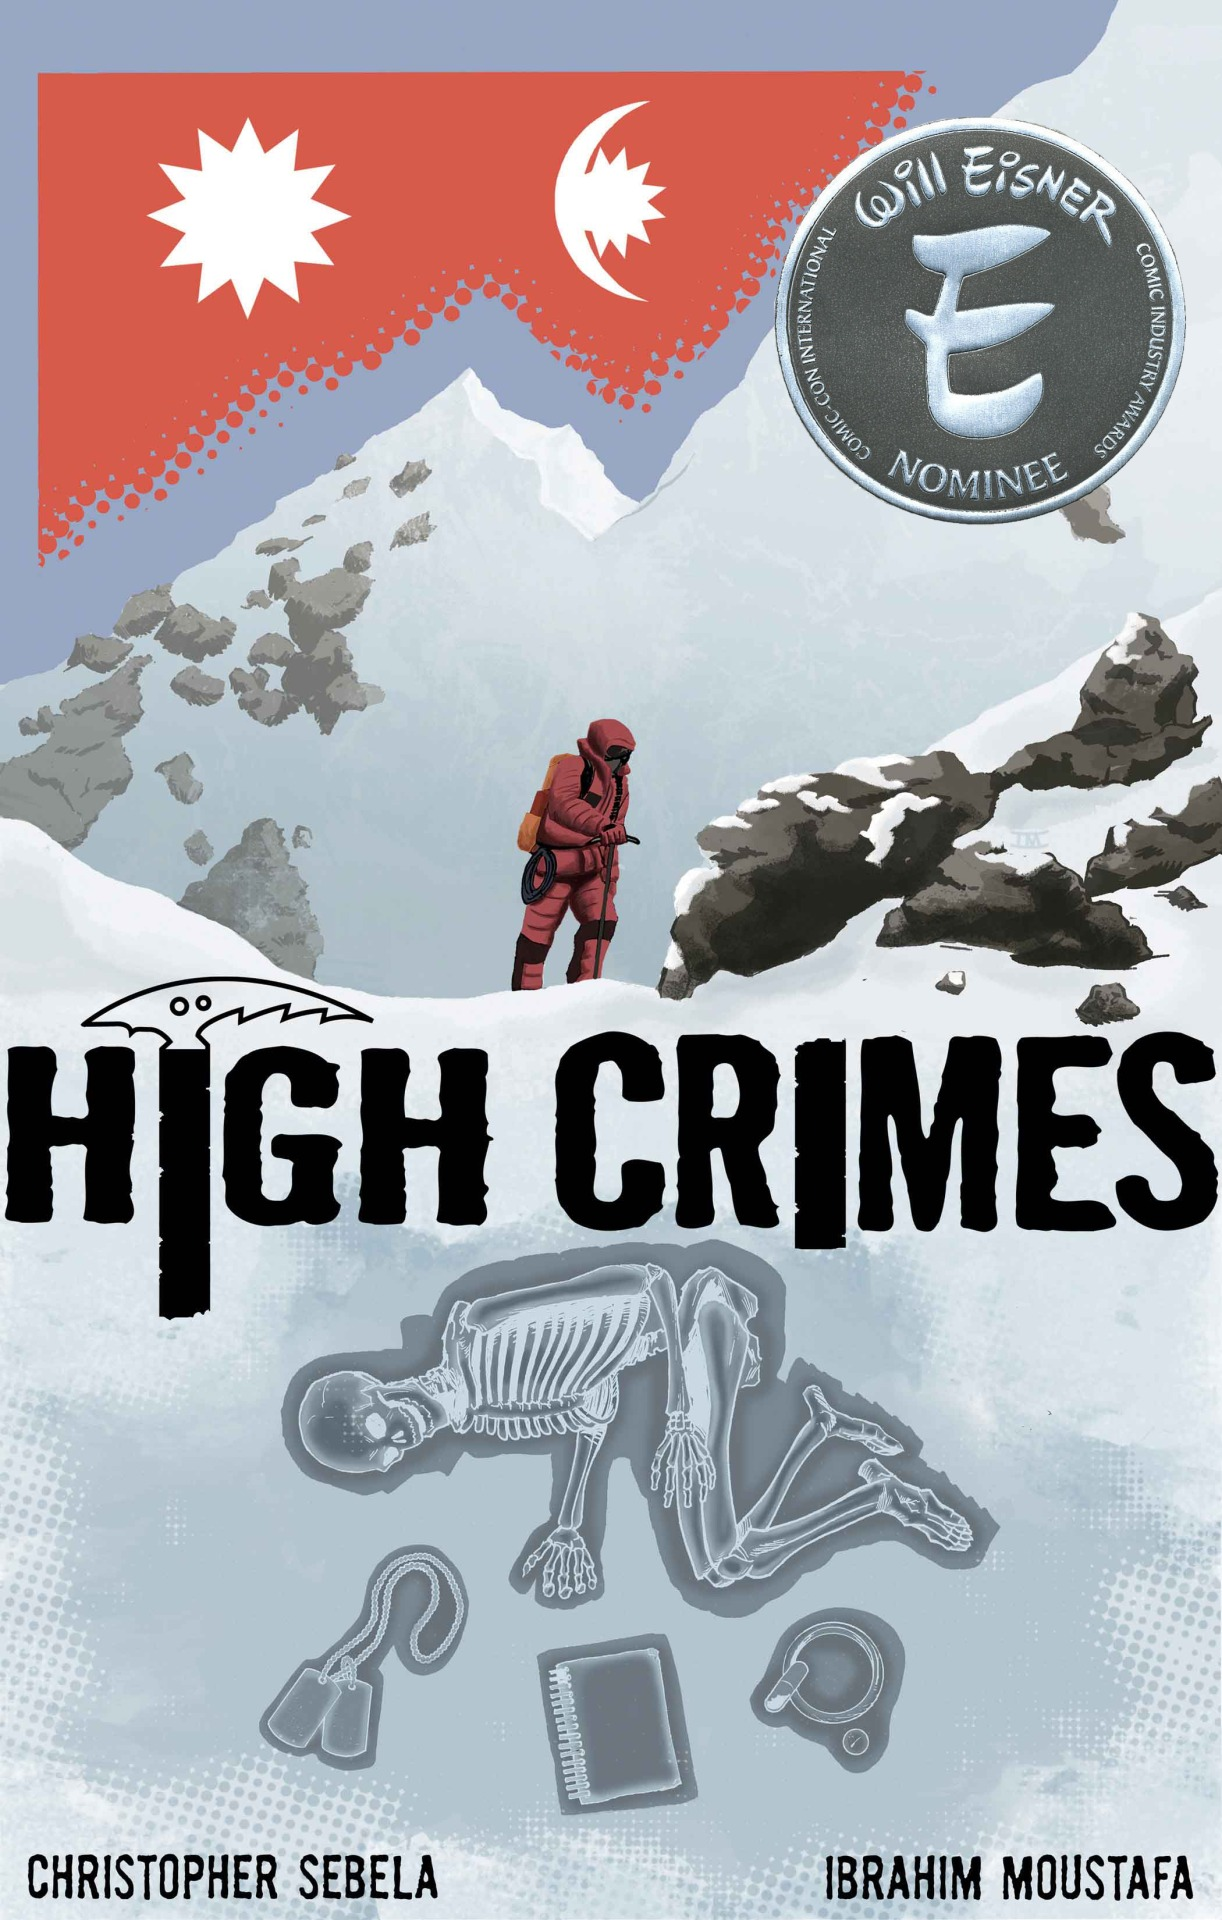 comixology: monkeybraincomics: We're delighted to announce that HIGH CRIMES has been nominated for TWO Eisner Awards this year, Best New Series and Best Digital/Webcomic. We couldn't be prouder of the work that Christopher Sebela and Ibrahim Moustafa have done on the series, and we think the nominations are richly deserved. HIGH CRIMES is just plain awesome, y'all. It's not quite like anything else out there, in the best way possible. But you don't have to take OUR word for it. Throughout the voting period, we're making the first issue available for free on ComiXogy. If you haven't yet checked out HIGH CRIMES, go read the first issue and see what all the fuss is about. And when you're finished reading that one, issues 2 through 6 are still on sale for the low, low price of 99 cents per issue! And if you HAVE already read the series, then go tell all of your friends to check it out. Otherwise, what kind of friend are you? Seriously. Confetti and Unicorns! <3 Us The first ever (but definitely not the last) Digital Comic to get a nod for Best New Series from the Eisners! #bigdeal Congrats to christophersebela, ibrahimmoustafa, monkeybraincomics, and everyone on the highcrimescomic team! Go read High Crimes! It's Free!!